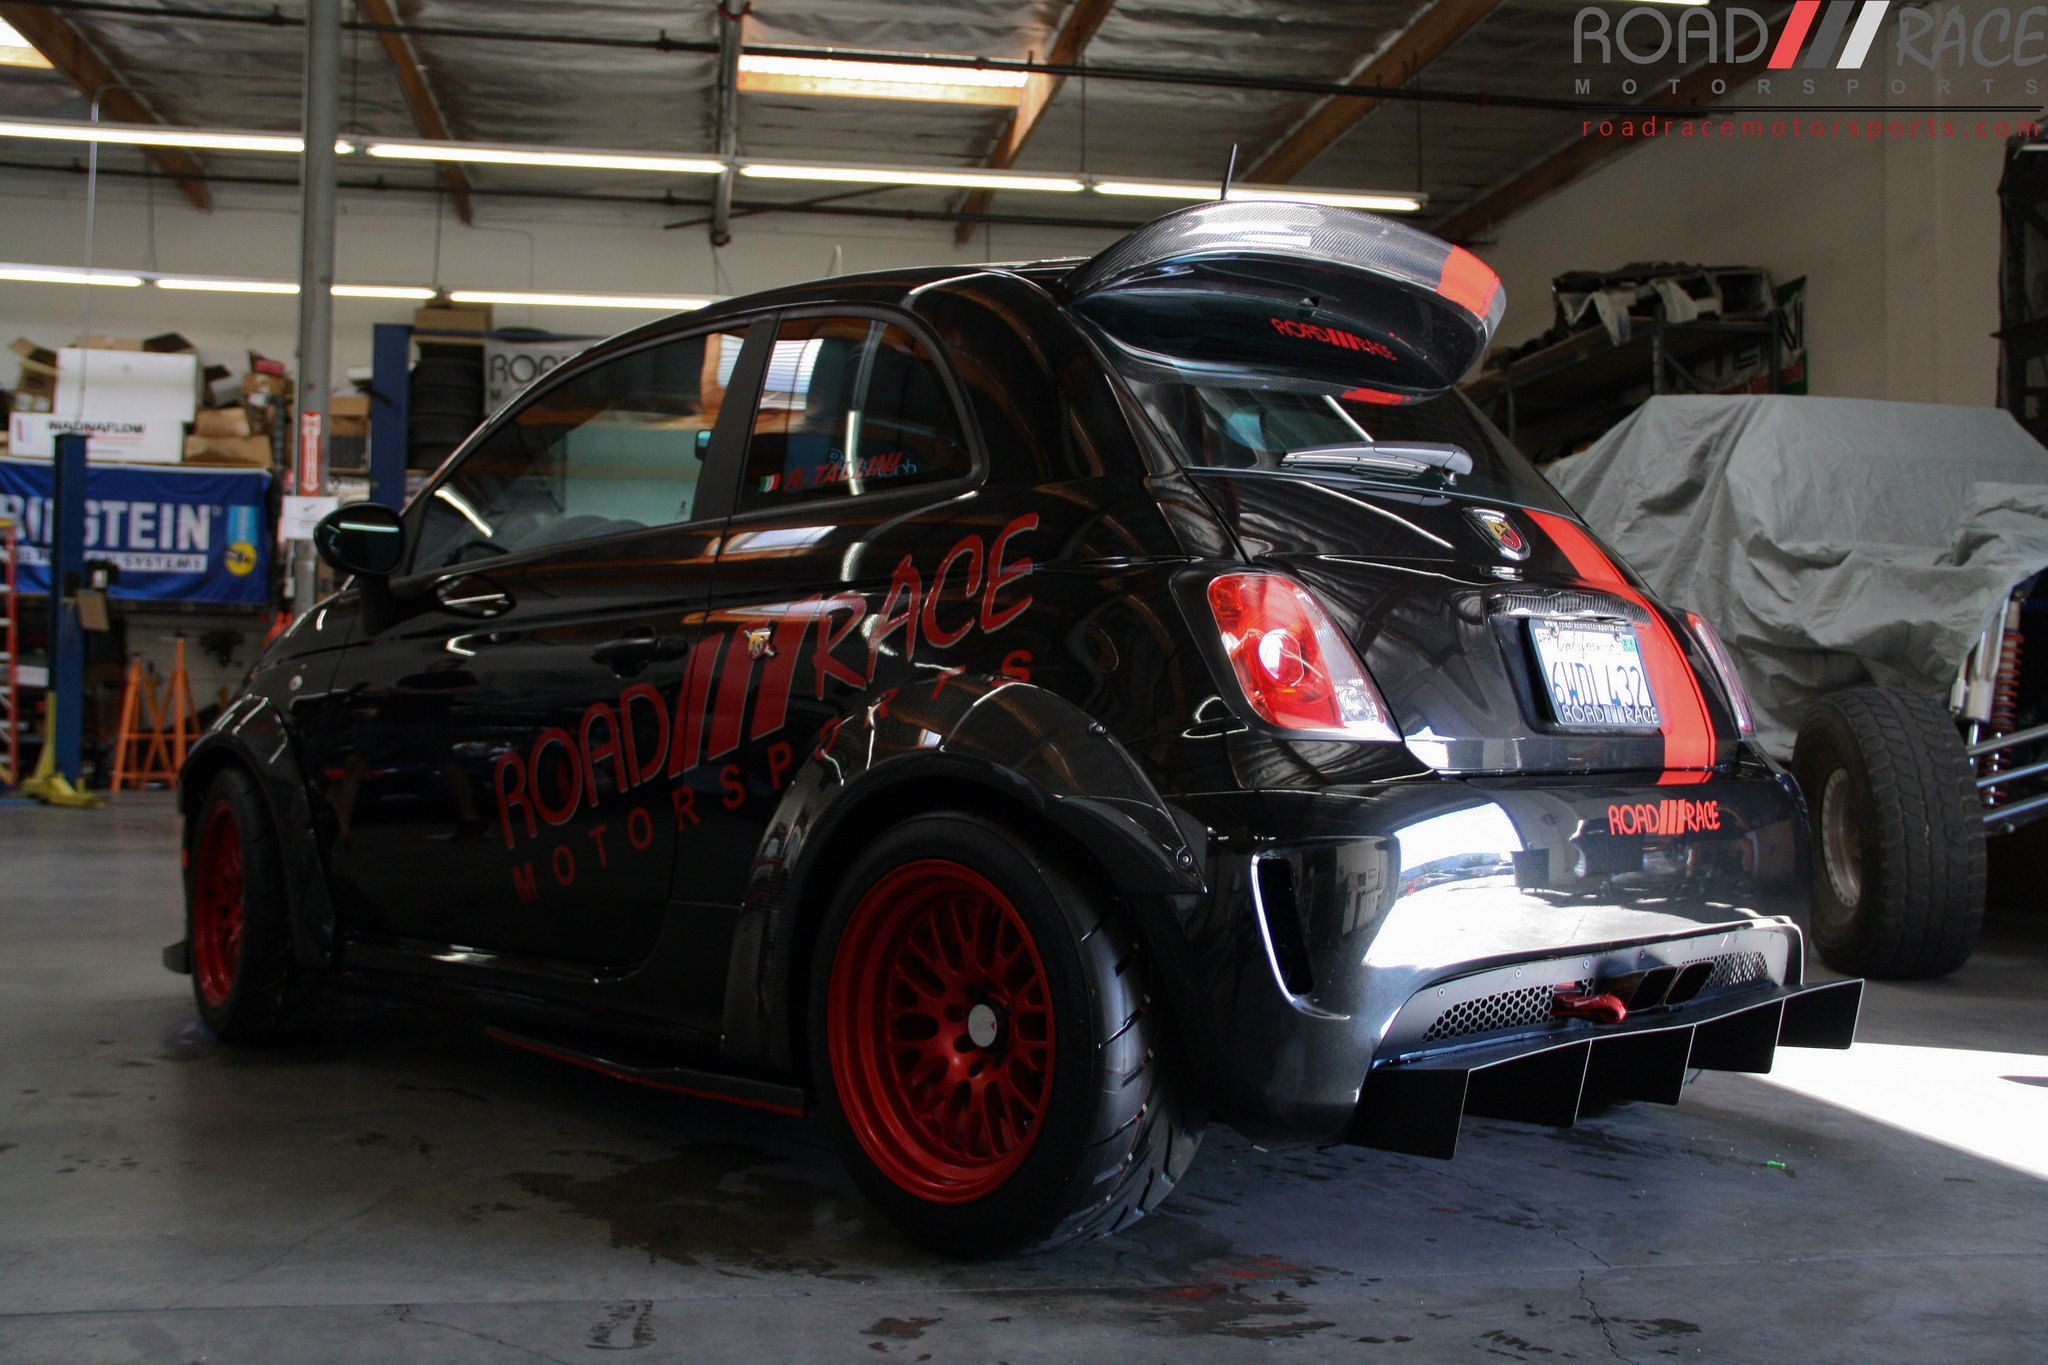 Fiat 500 Abarth Widebody With Images Fiat Fiat 500 Fiat Abarth